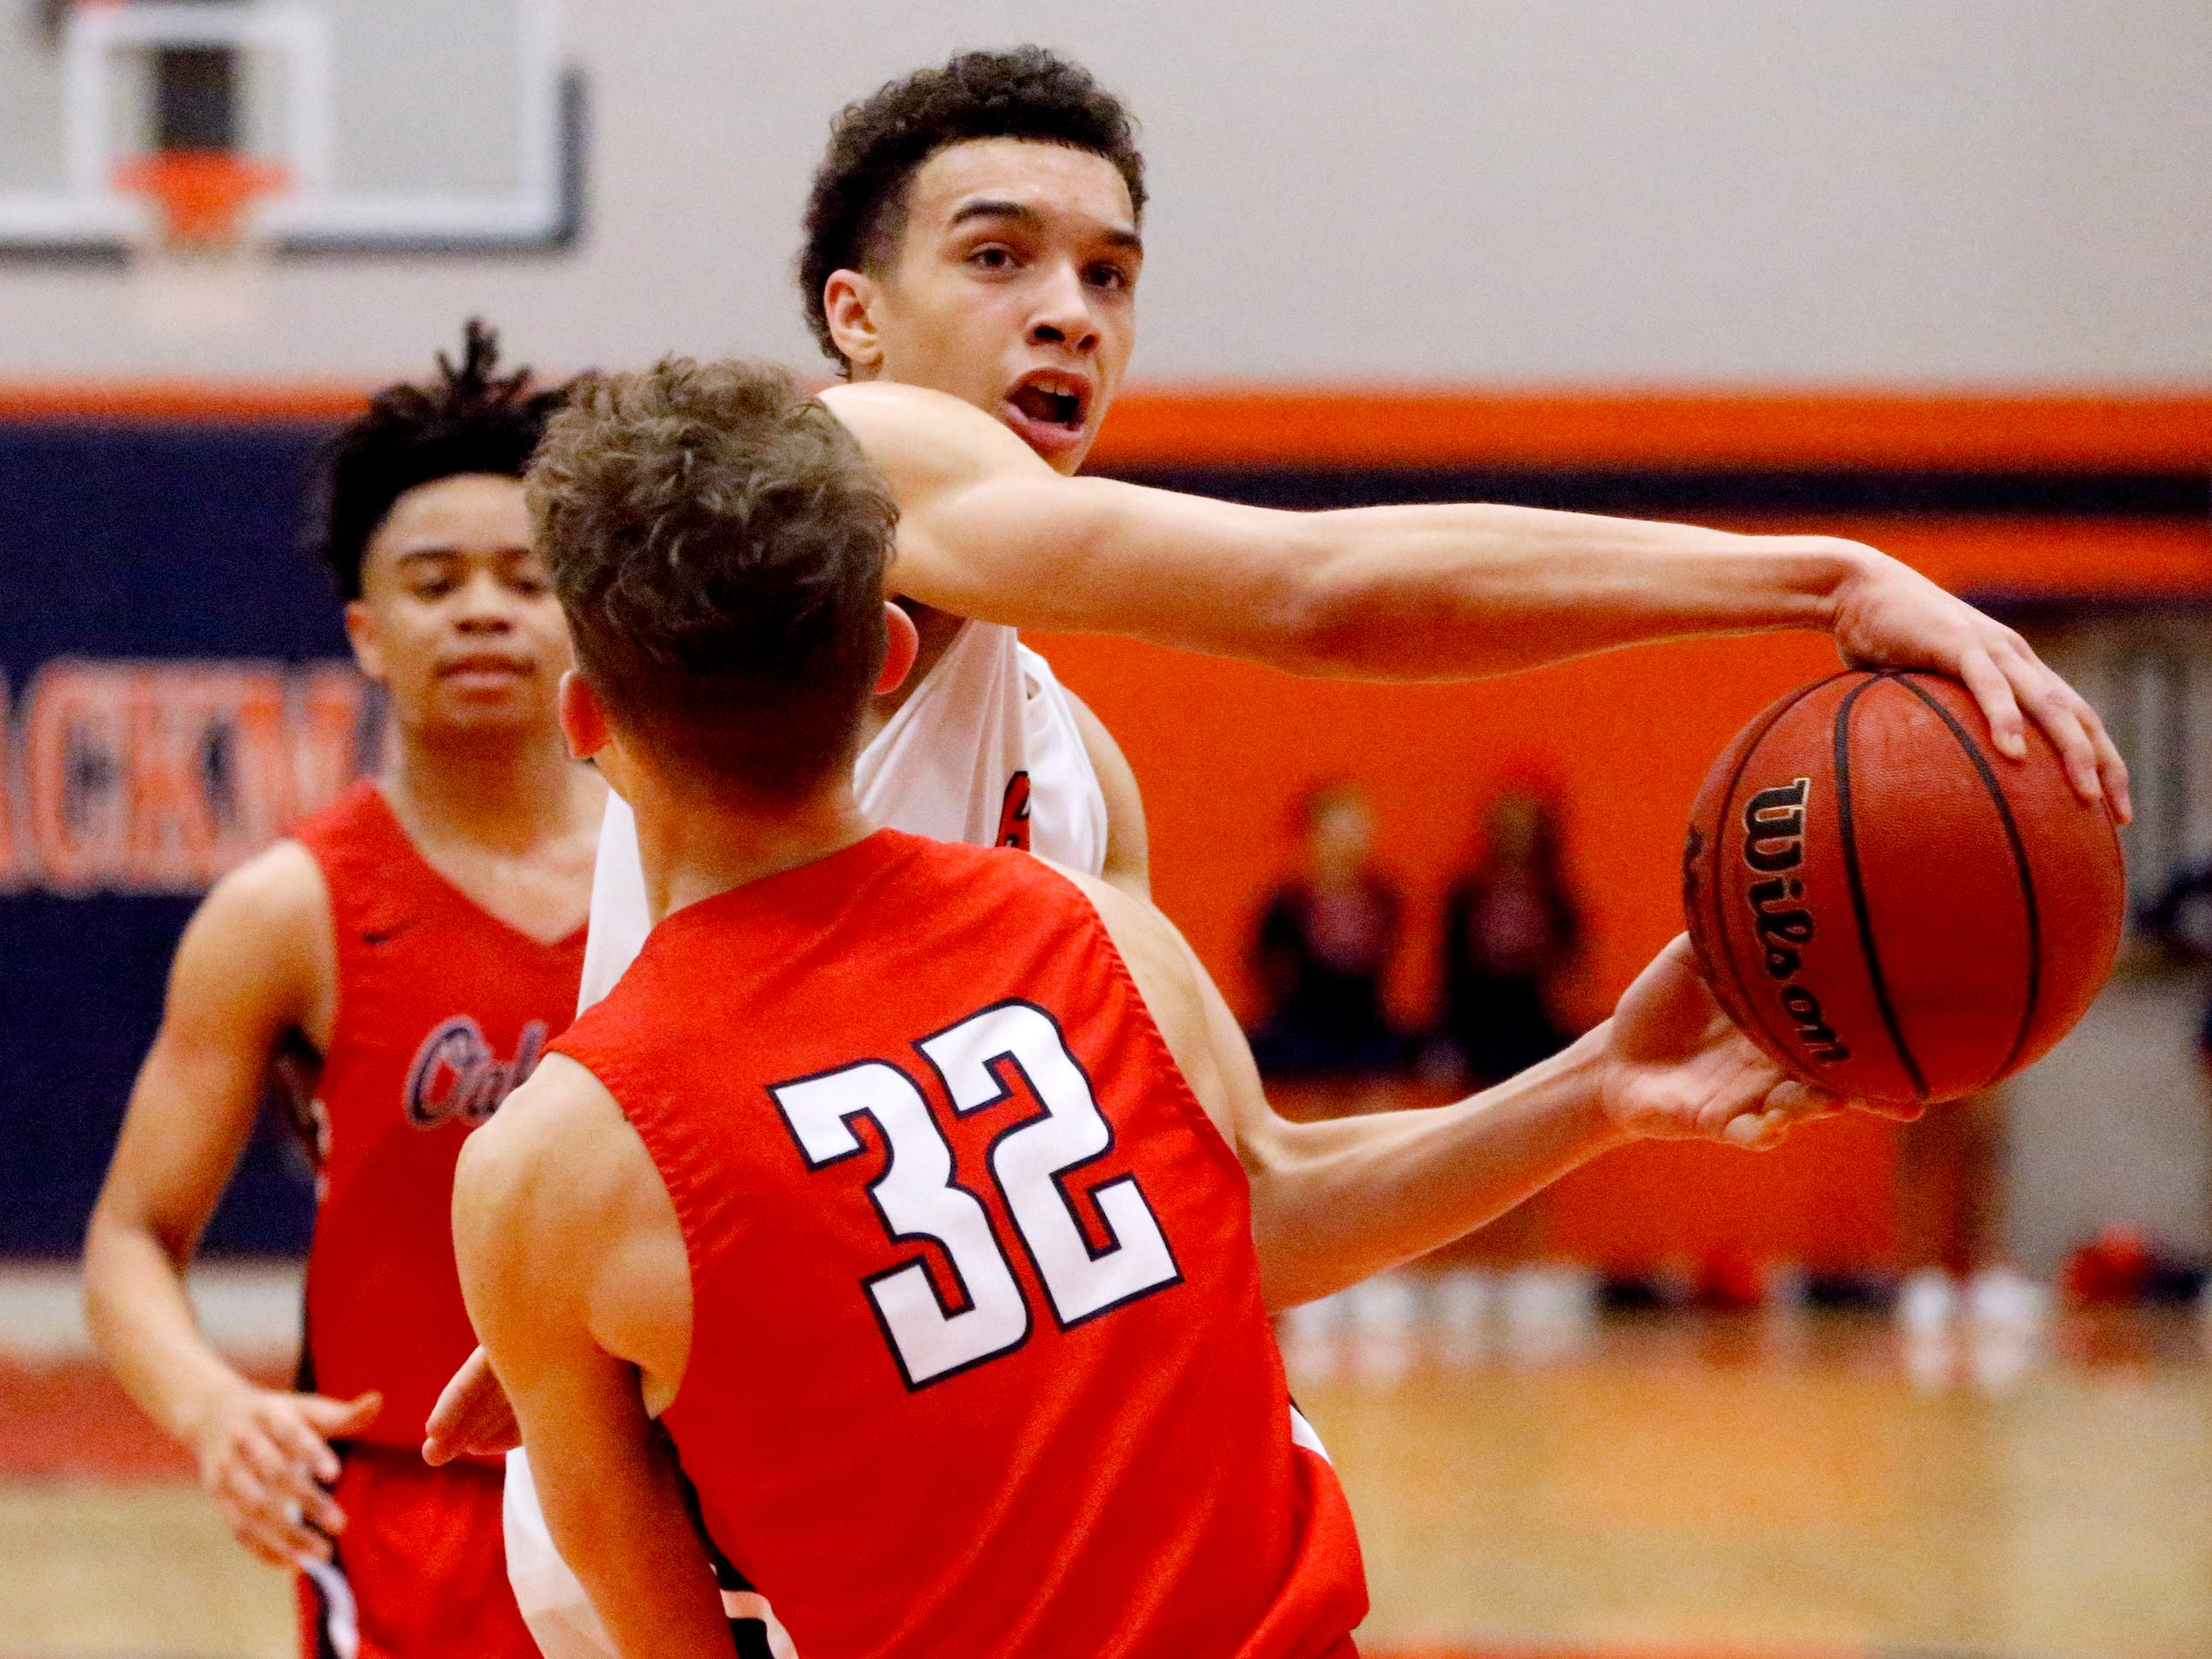 Blackman's Jalen Page (15) tries to pass the ball around Oakland's Carter Baugh (32) on Friday, Feb. 8, 2019.